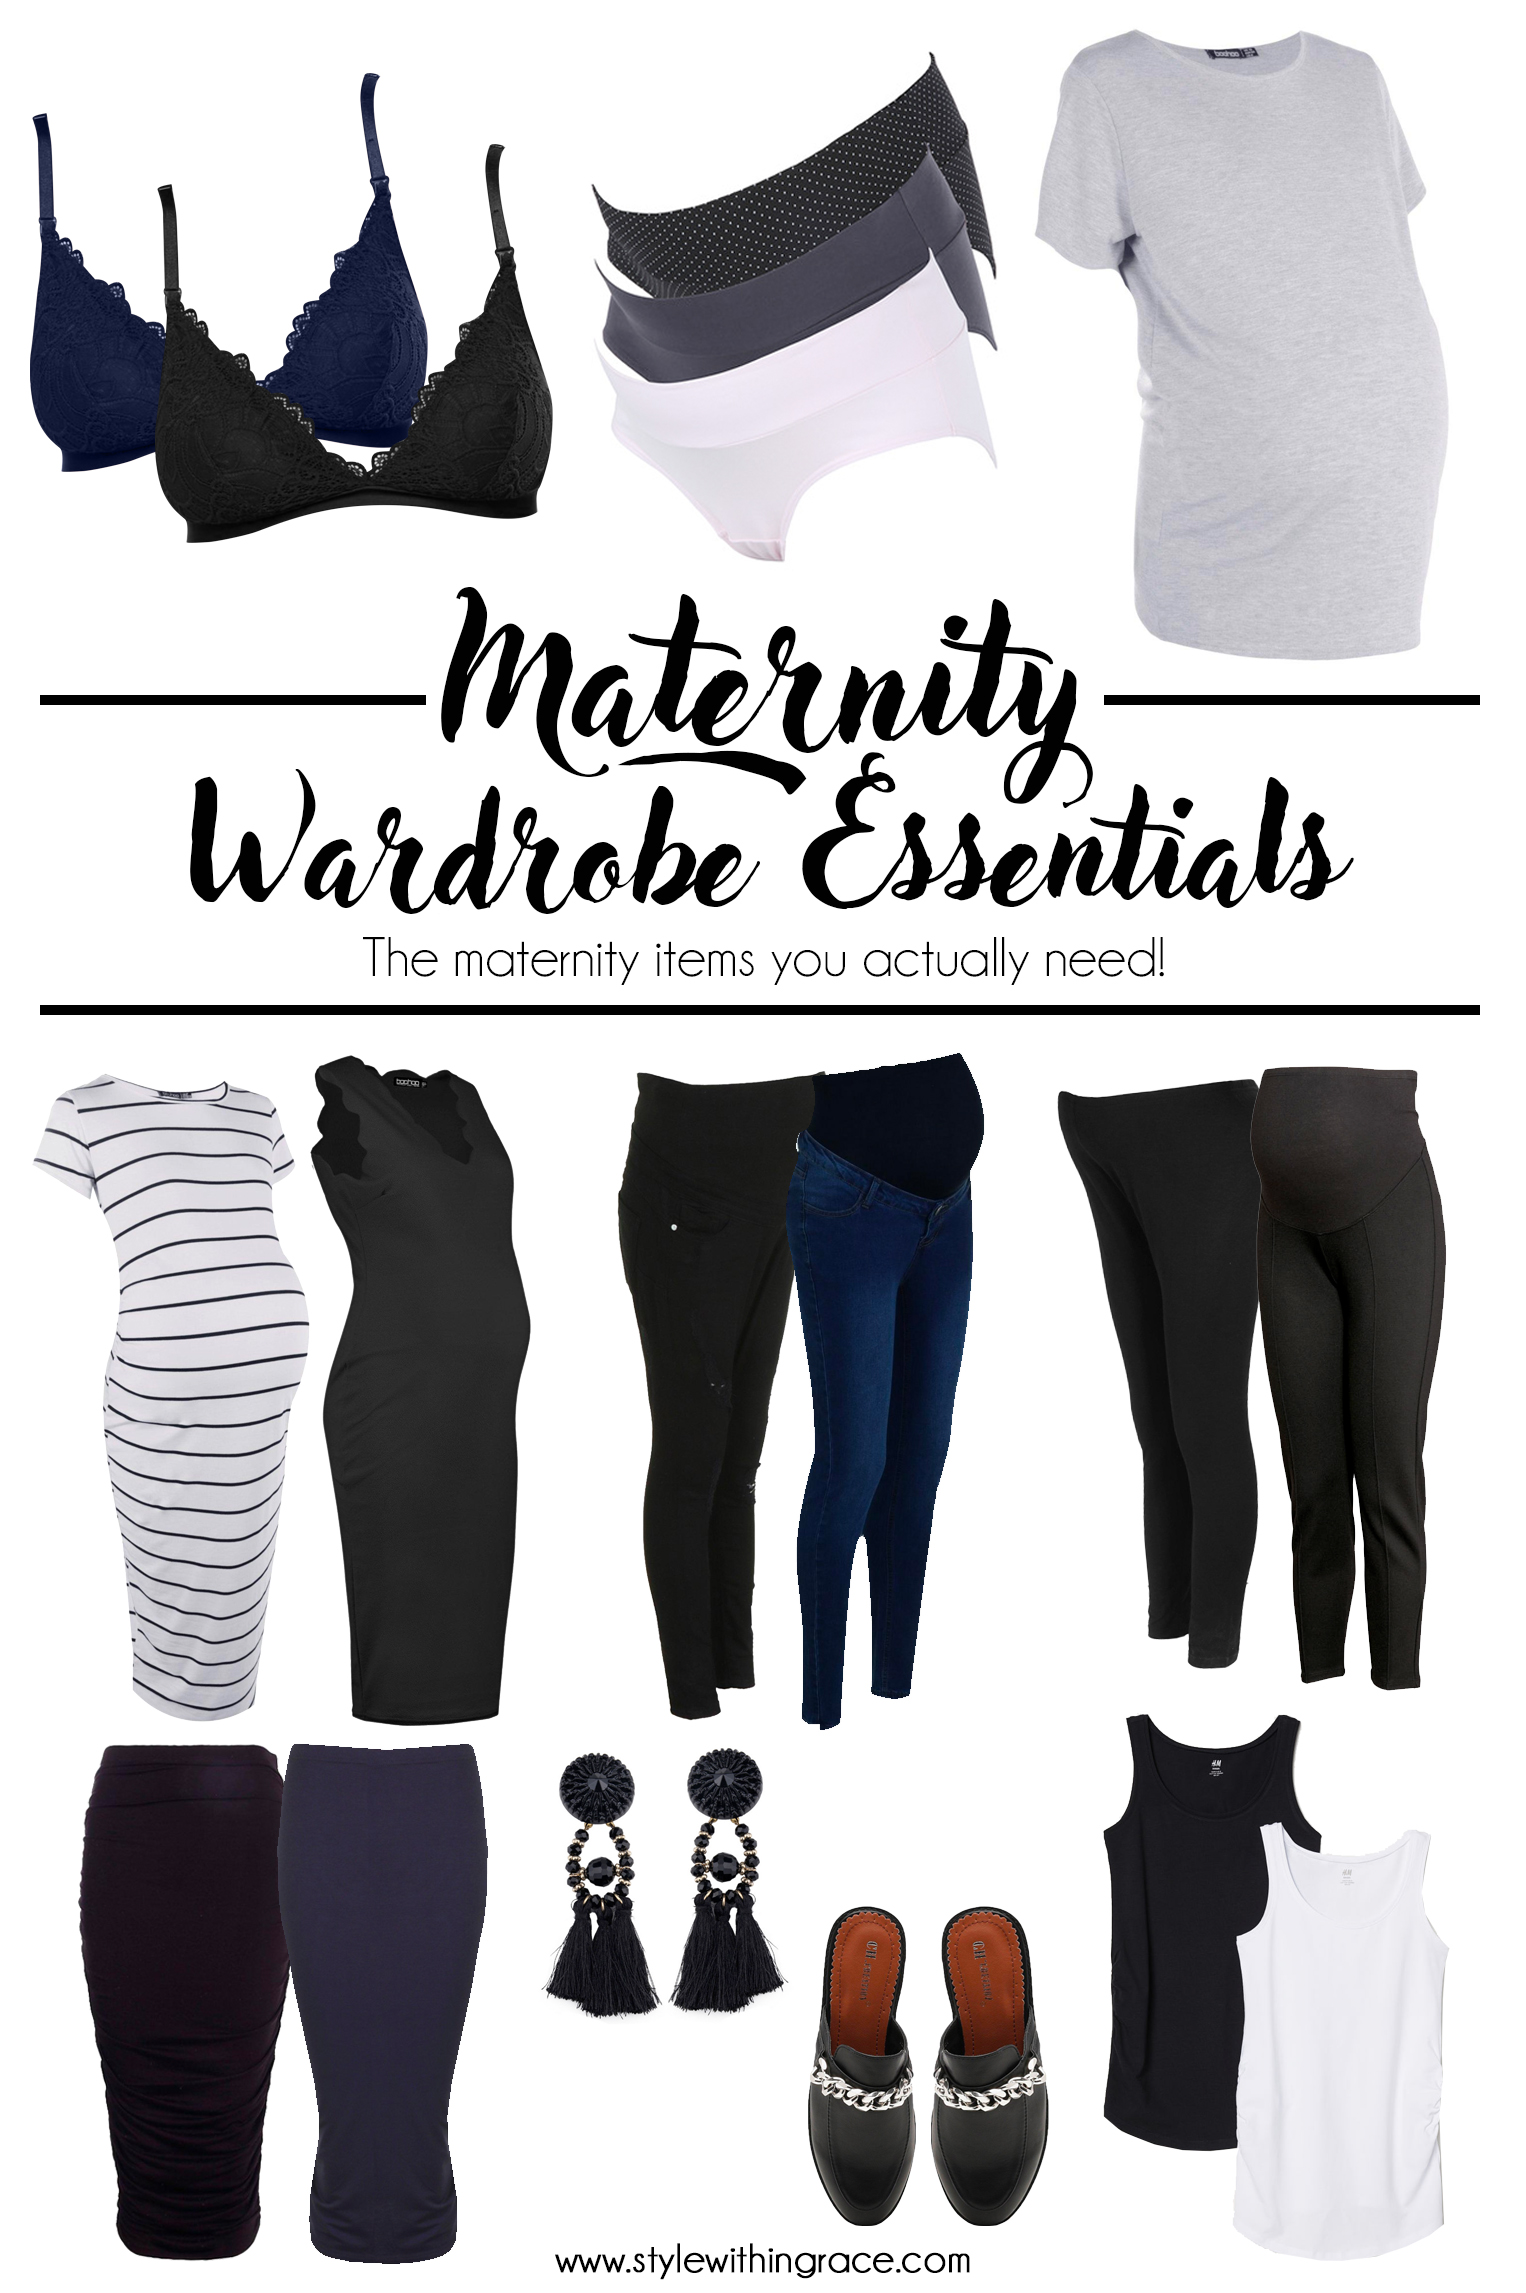 Maternity Wardrobe Essentials Pinterest Graphic